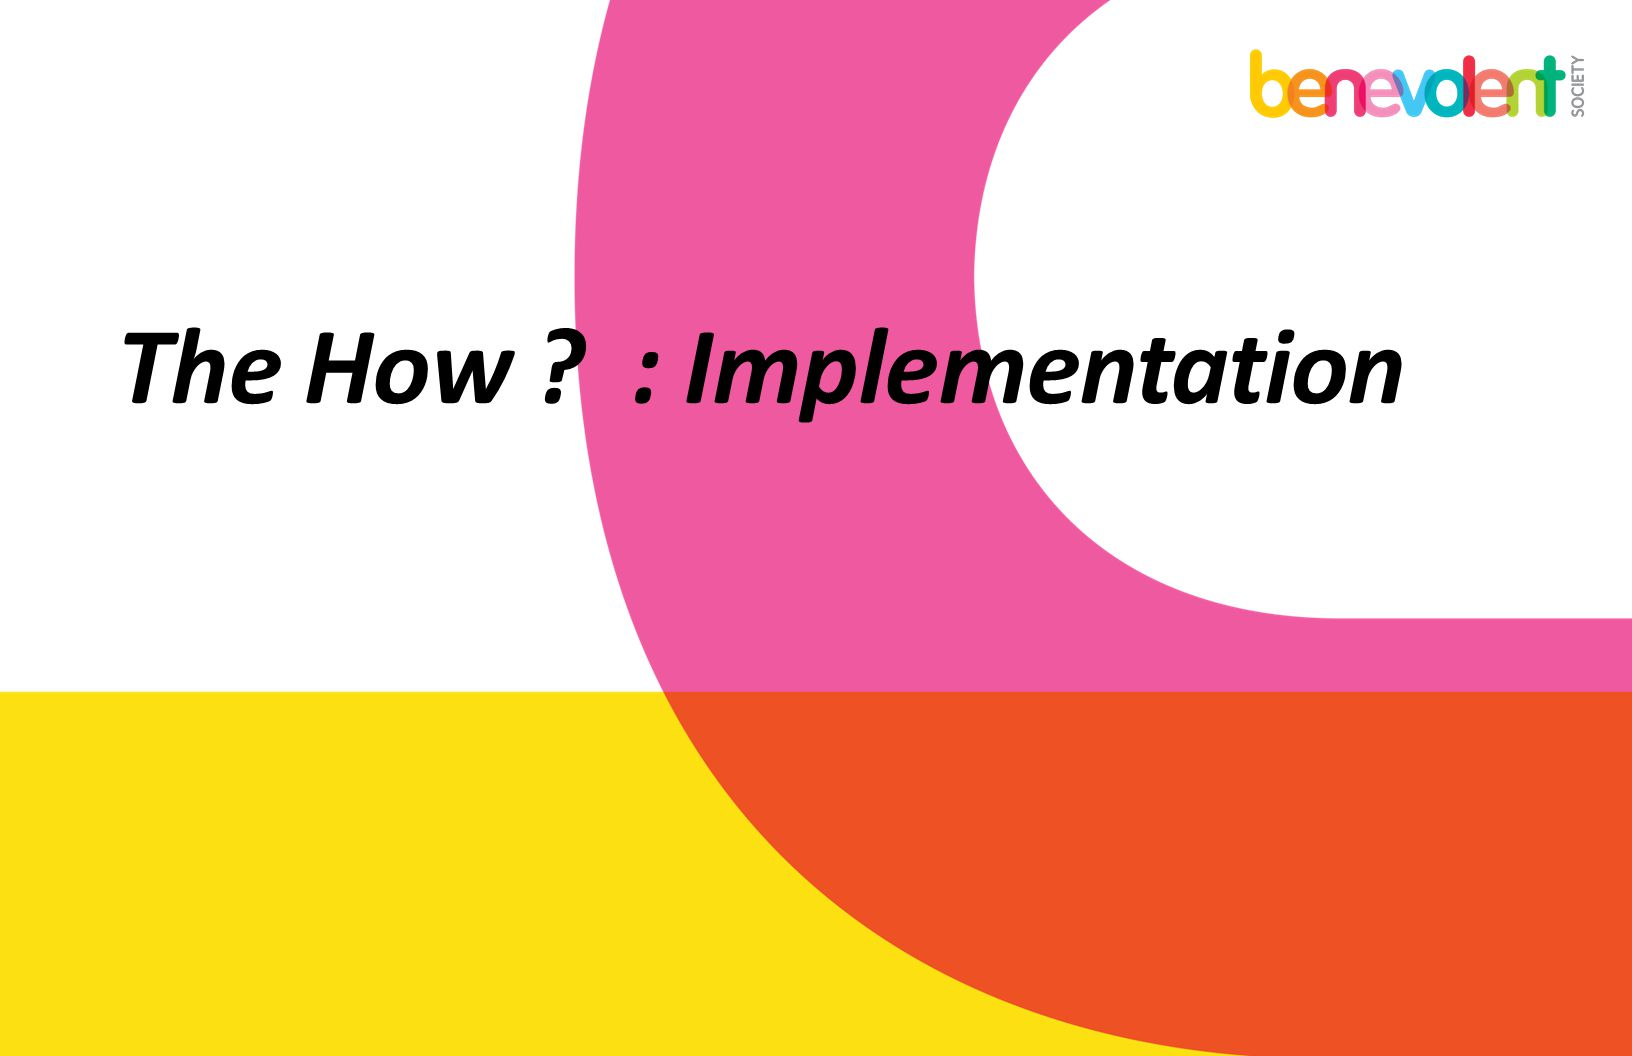 The How : Implementation